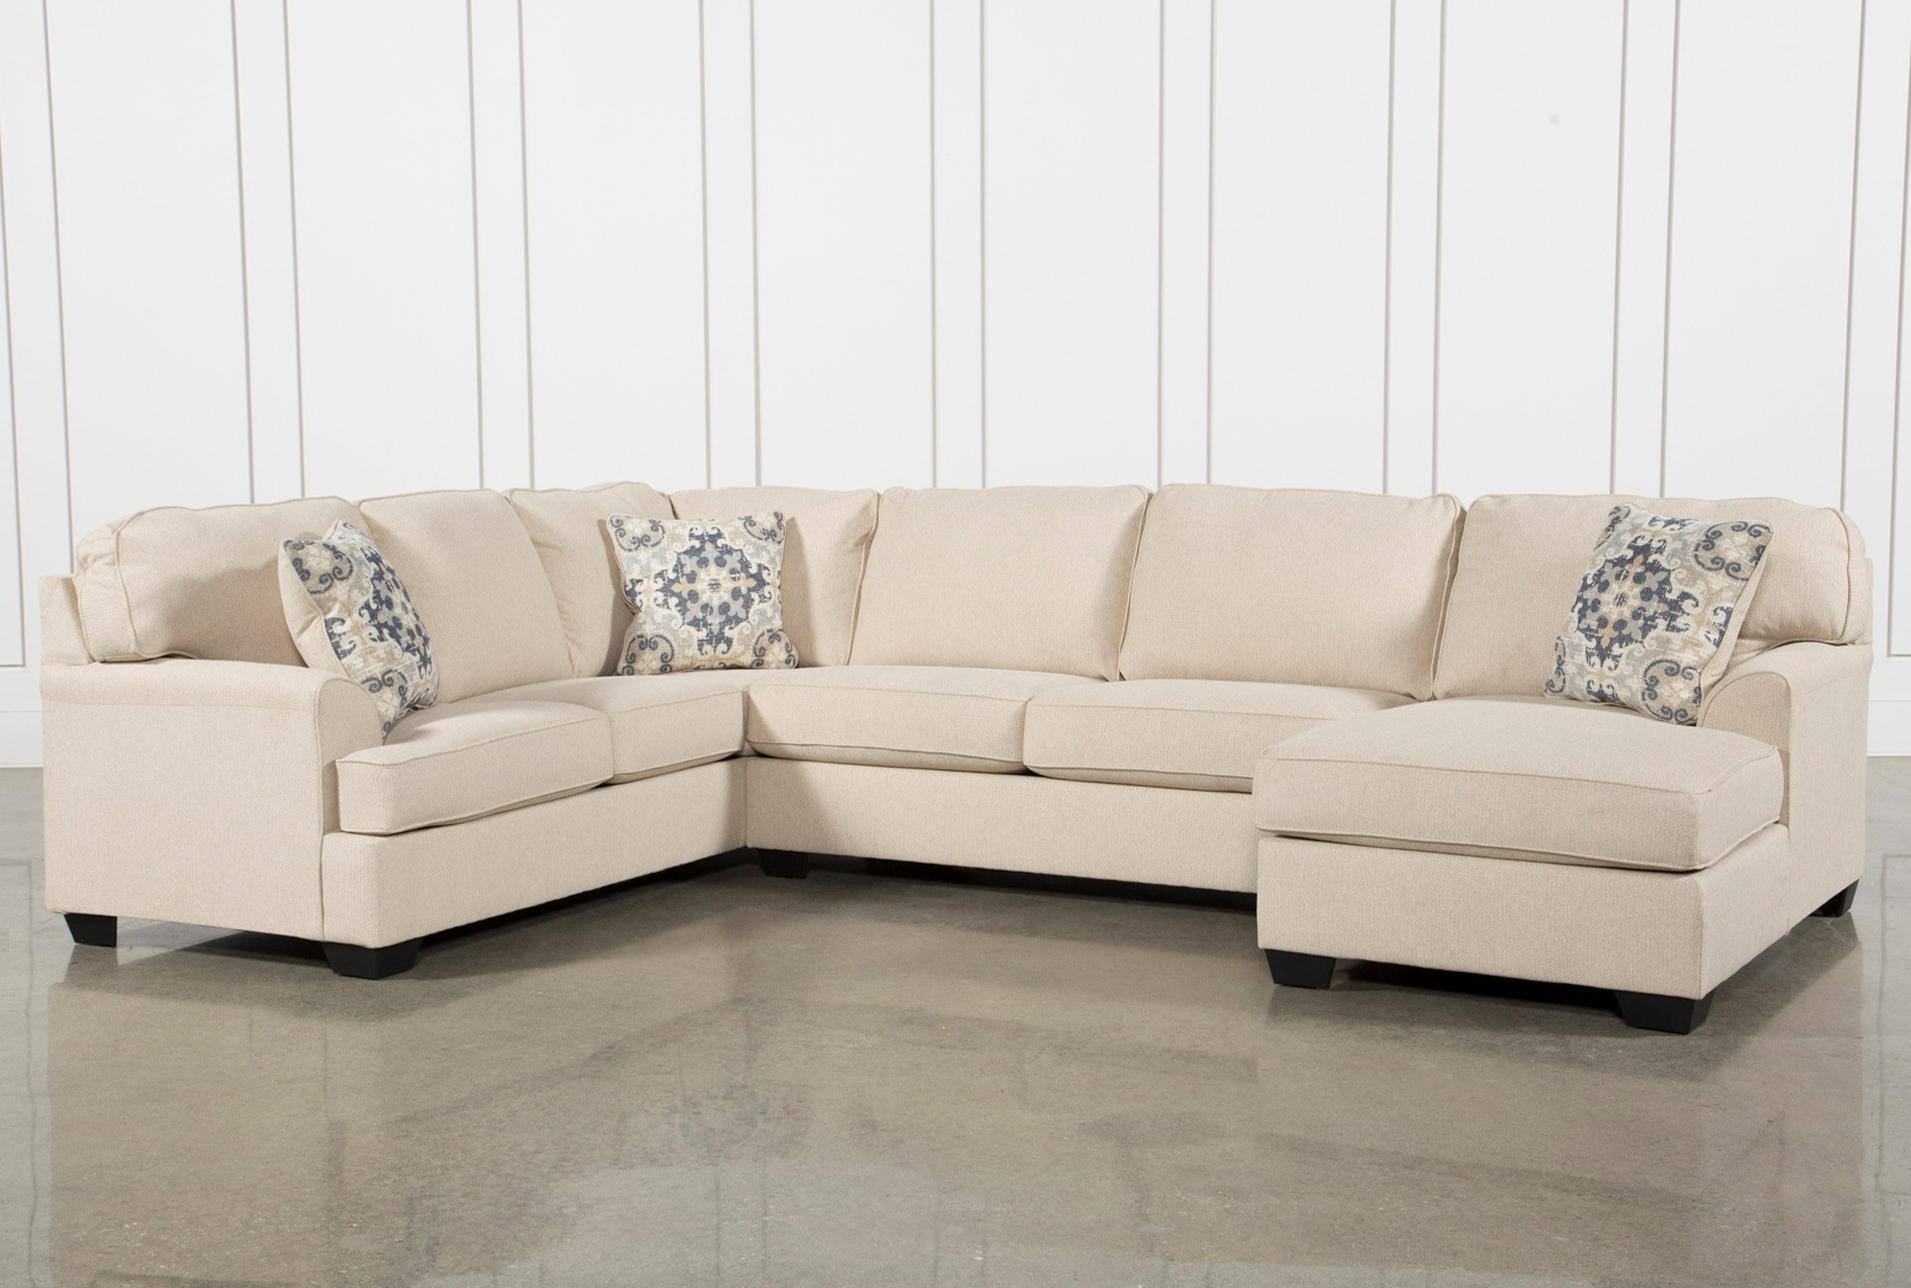 Widely Used Evan 2 Piece Sectionals With Raf Chaise Inside 3 Piece Sectional – Locsbyhelenelorasa (View 9 of 20)